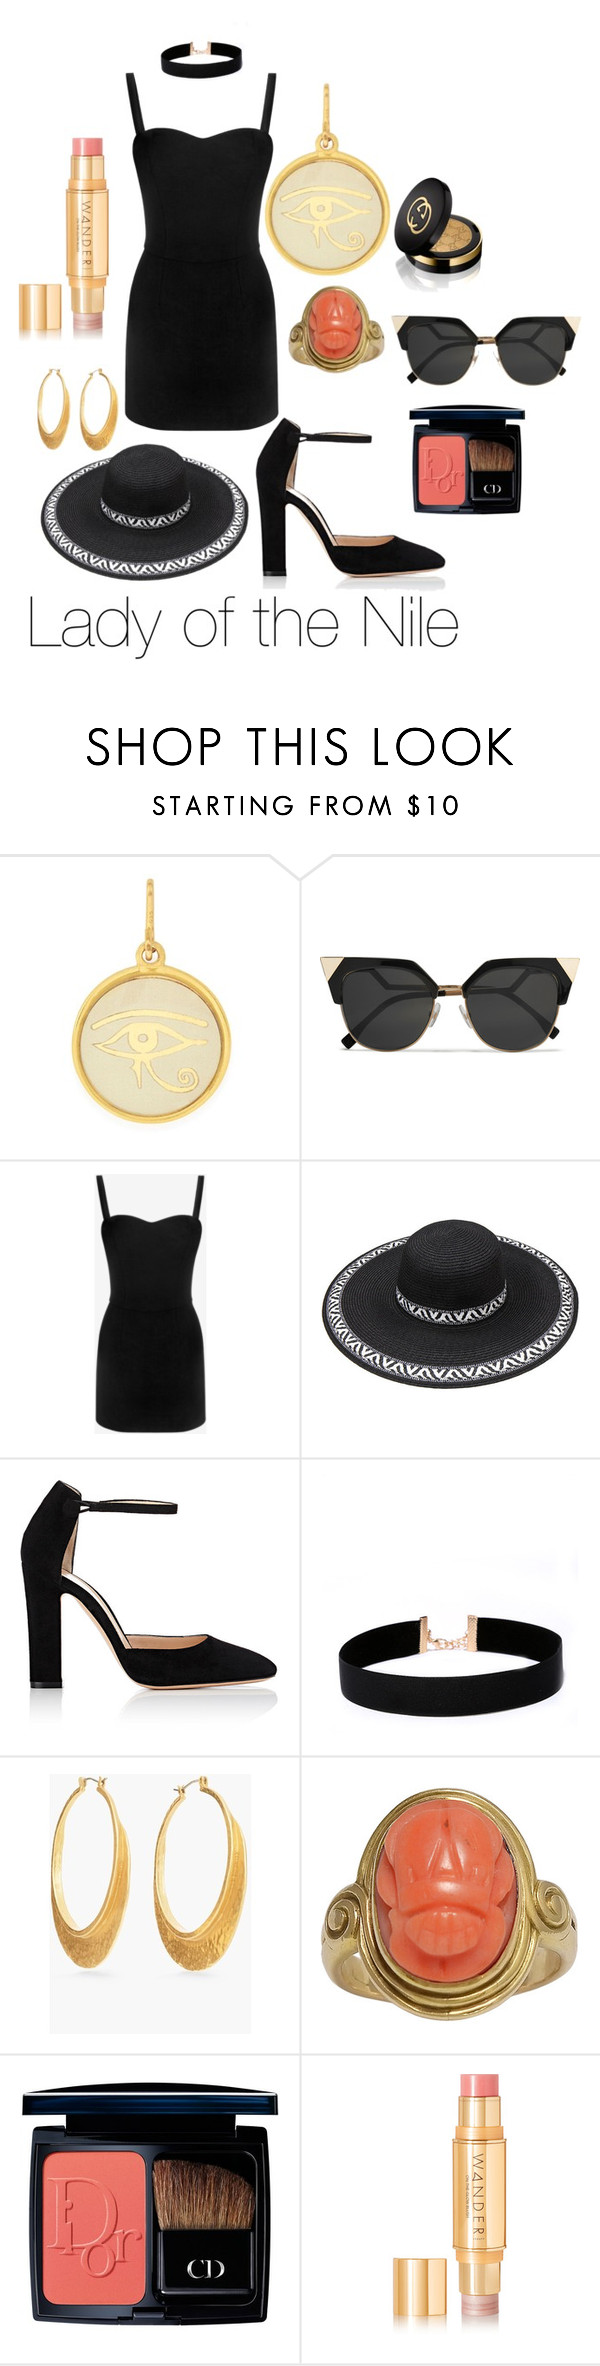 """""""Lady of the Nile"""" by marie-v-fox on Polyvore featuring Alex and Ani, Fendi, Alexander McQueen, Gianvito Rossi, LULUS, Chico's, Christian Dior, Wander Beauty and Gucci"""